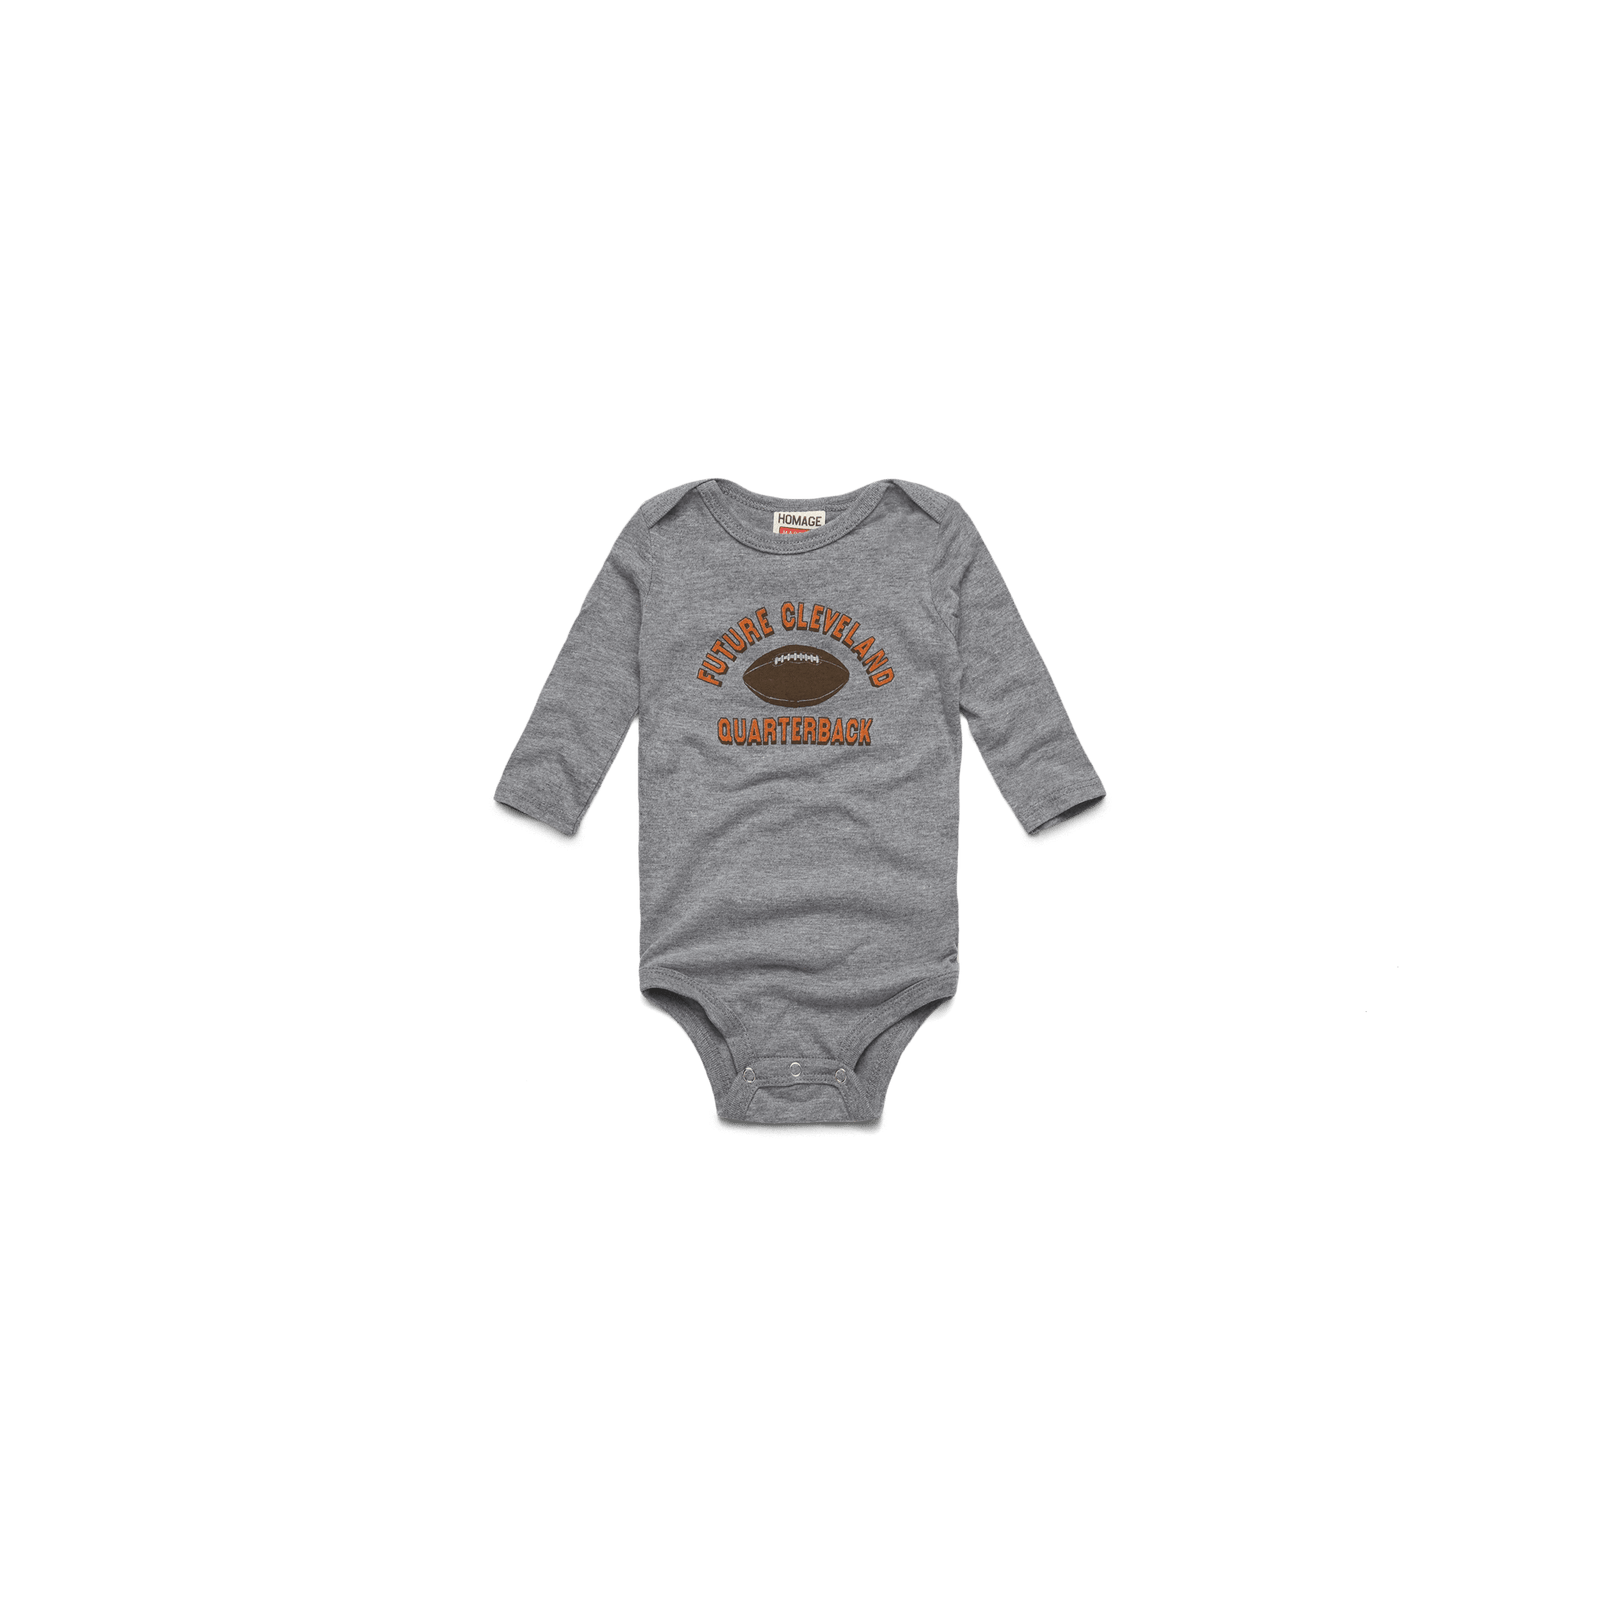 Future Cleveland QB Long Sleeve Baby One Piece